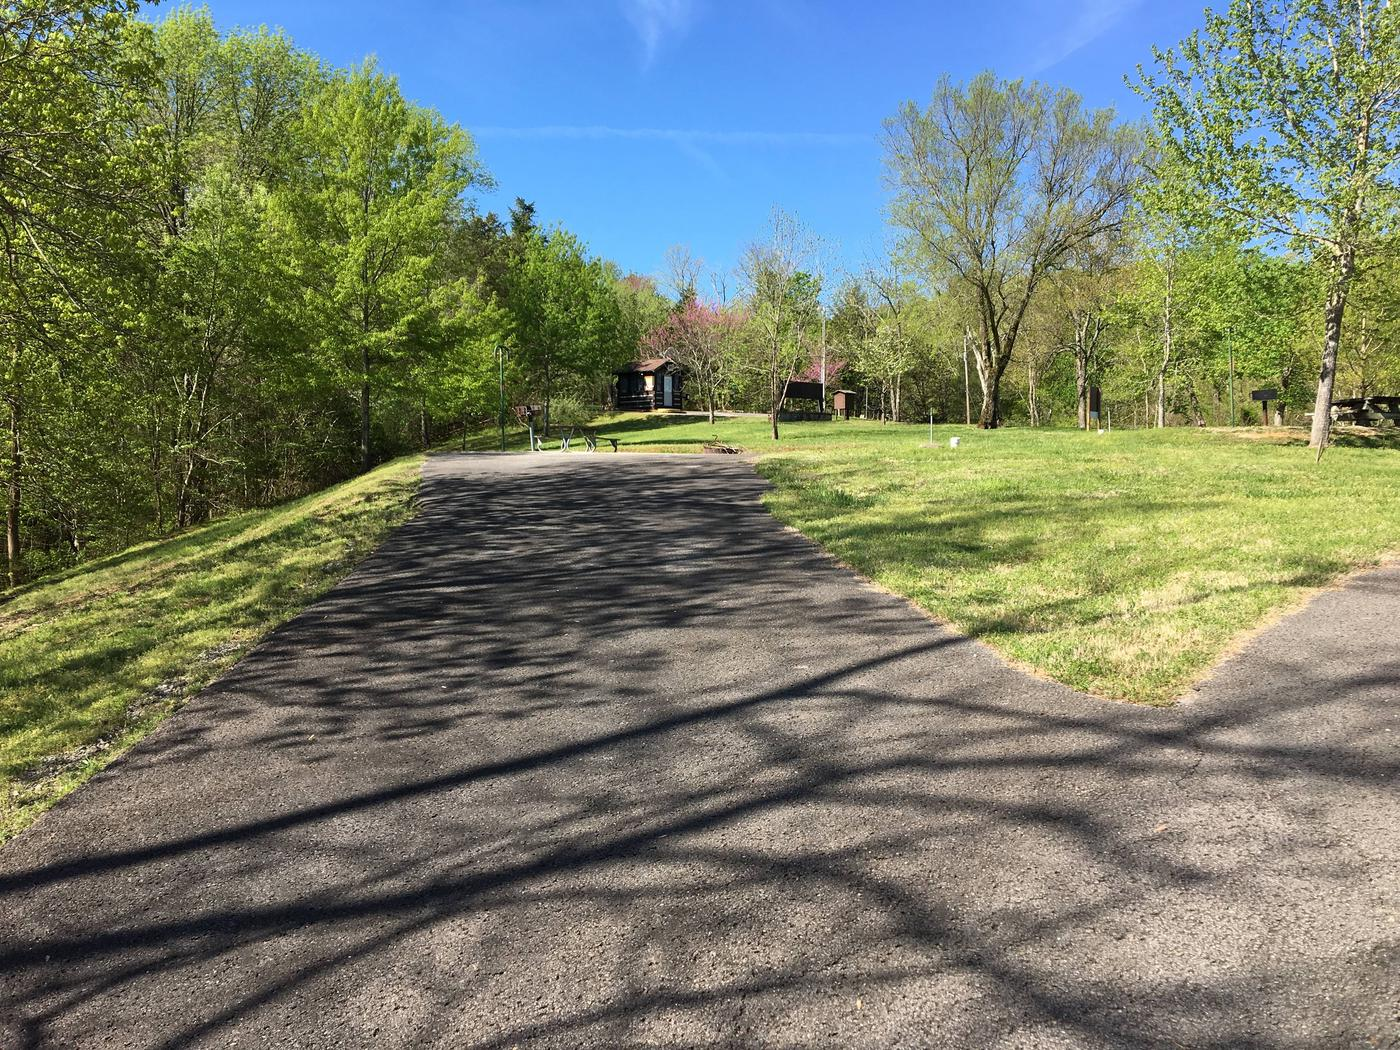 LILLYDALE CAMPGROUND SITE #6 PAVED INCLINE PARKINGLILLYDALE CAMPGROUND SITE #6